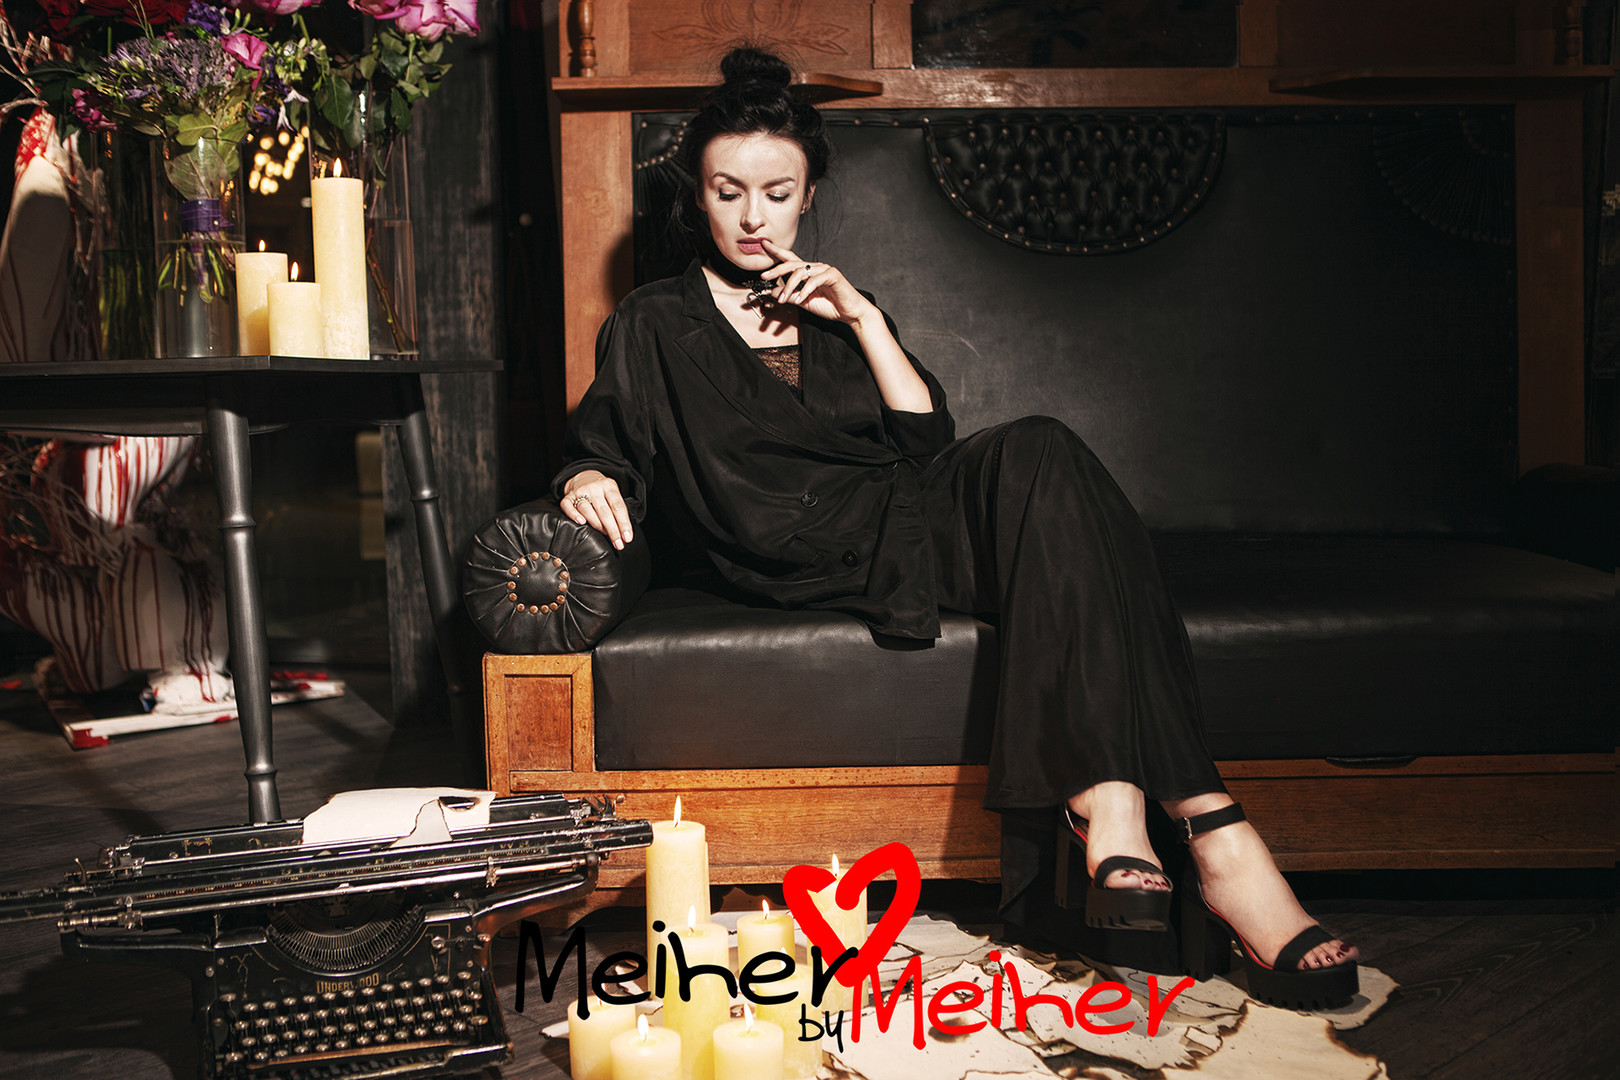 Meiher by Meiher | fall/winter 2016/2017